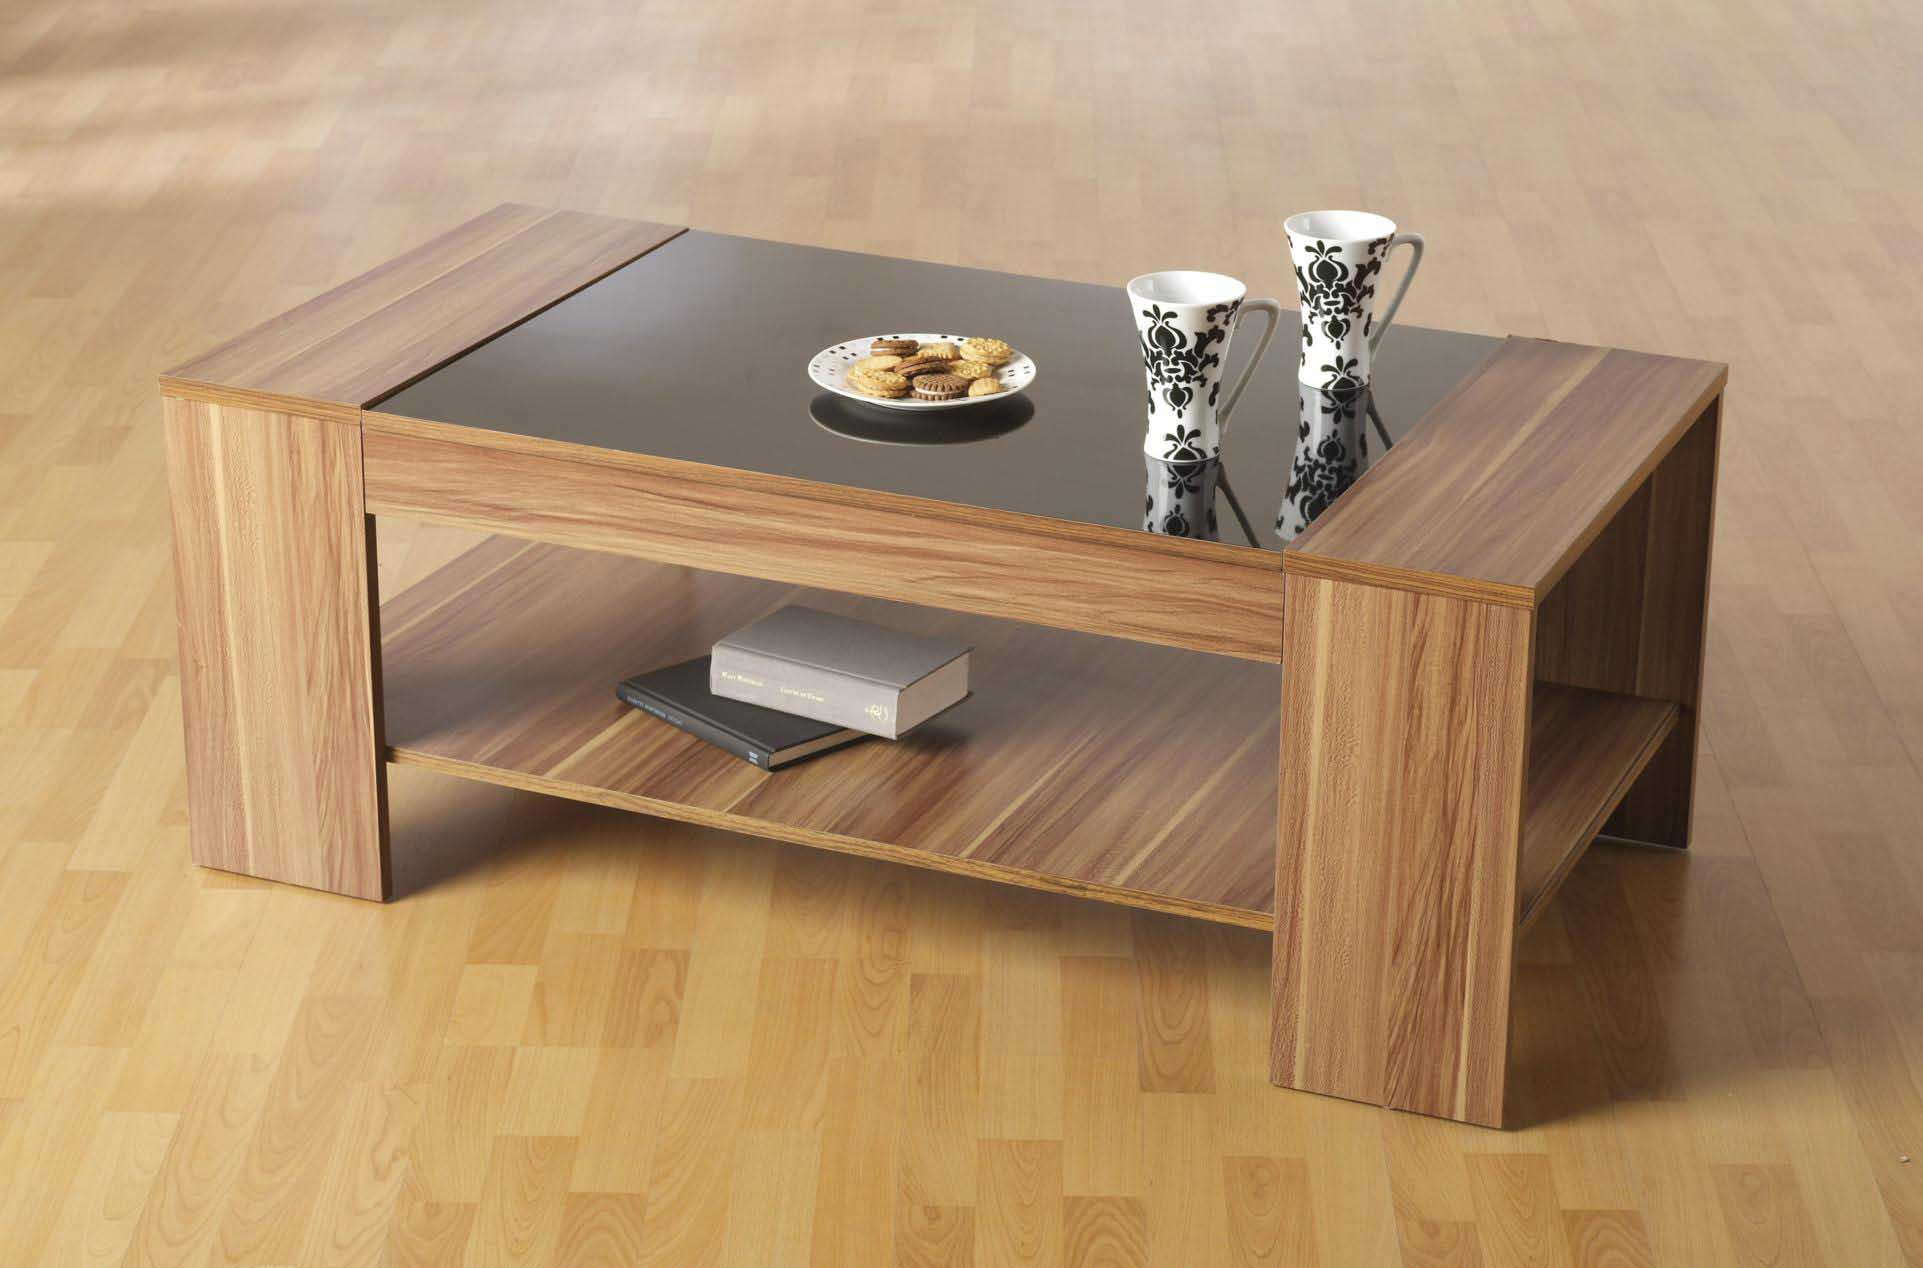 Minimalistic Coffee Table Style